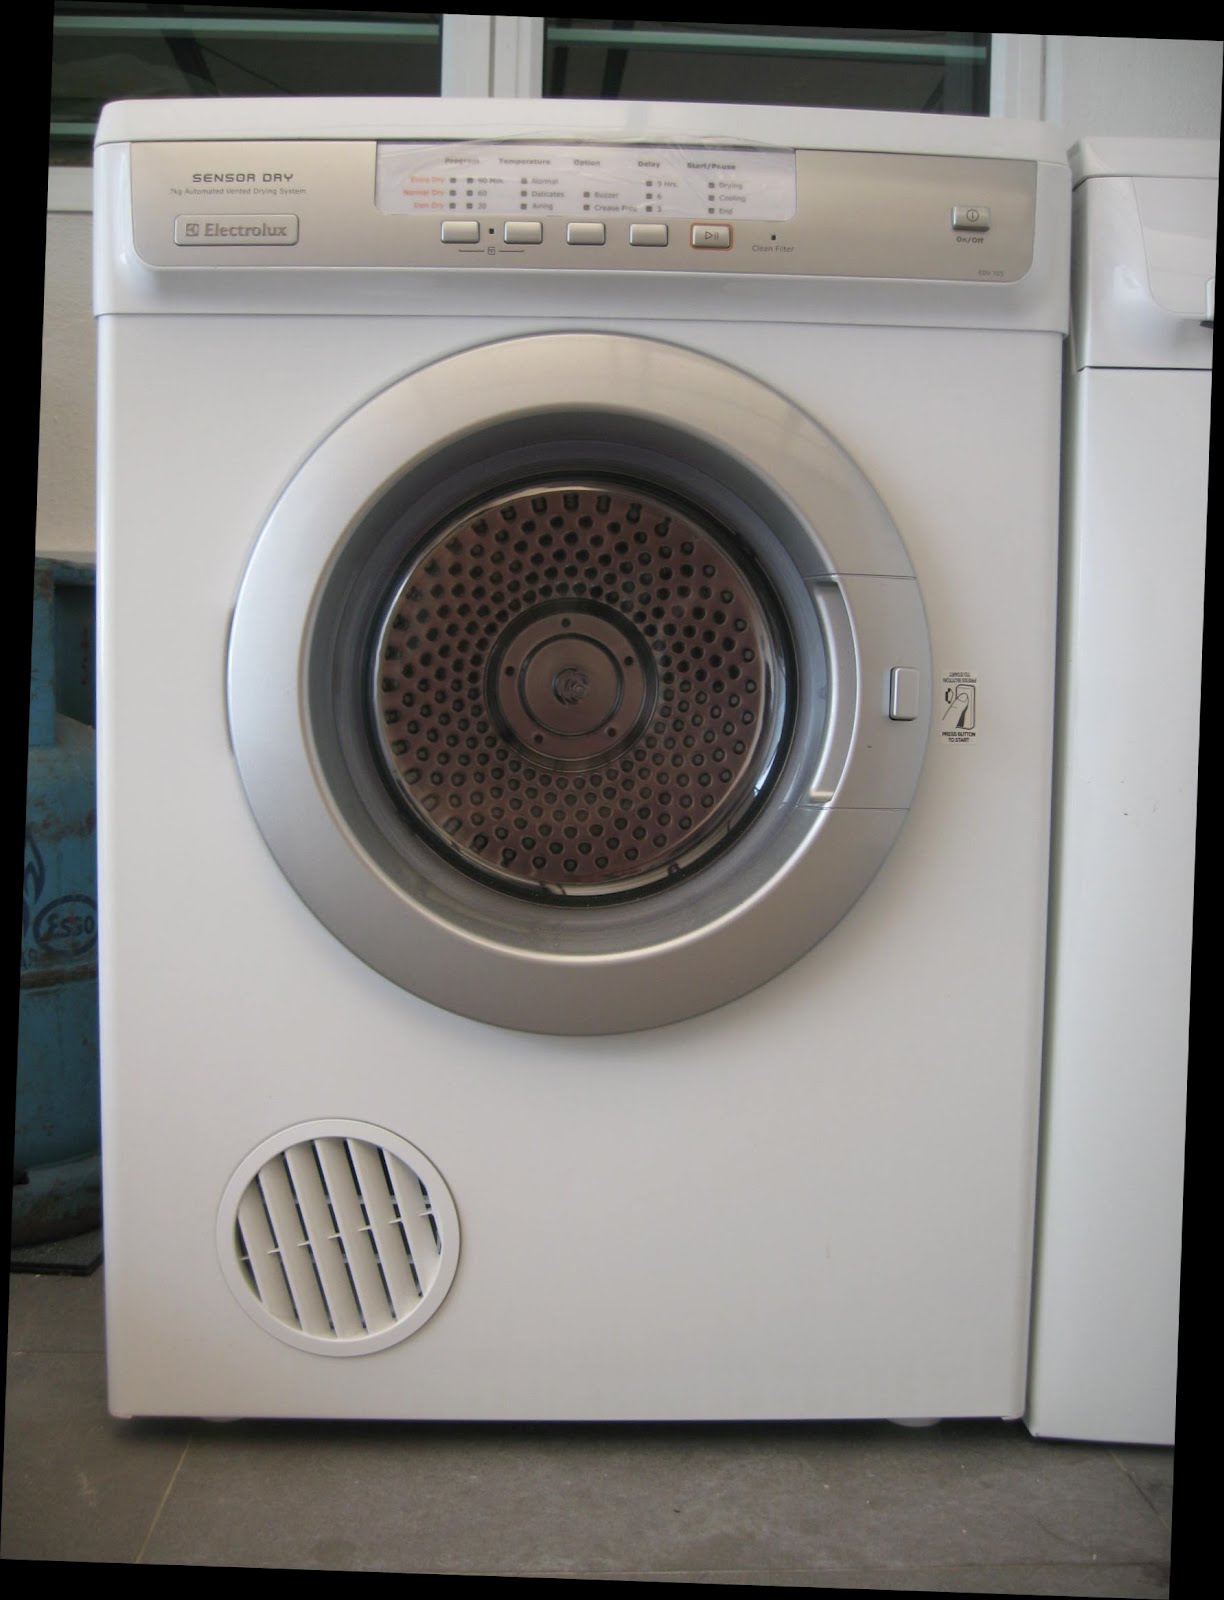 Electrolux Sensor Dry 7kg laundry drier for sale. Click photo to enlarge.